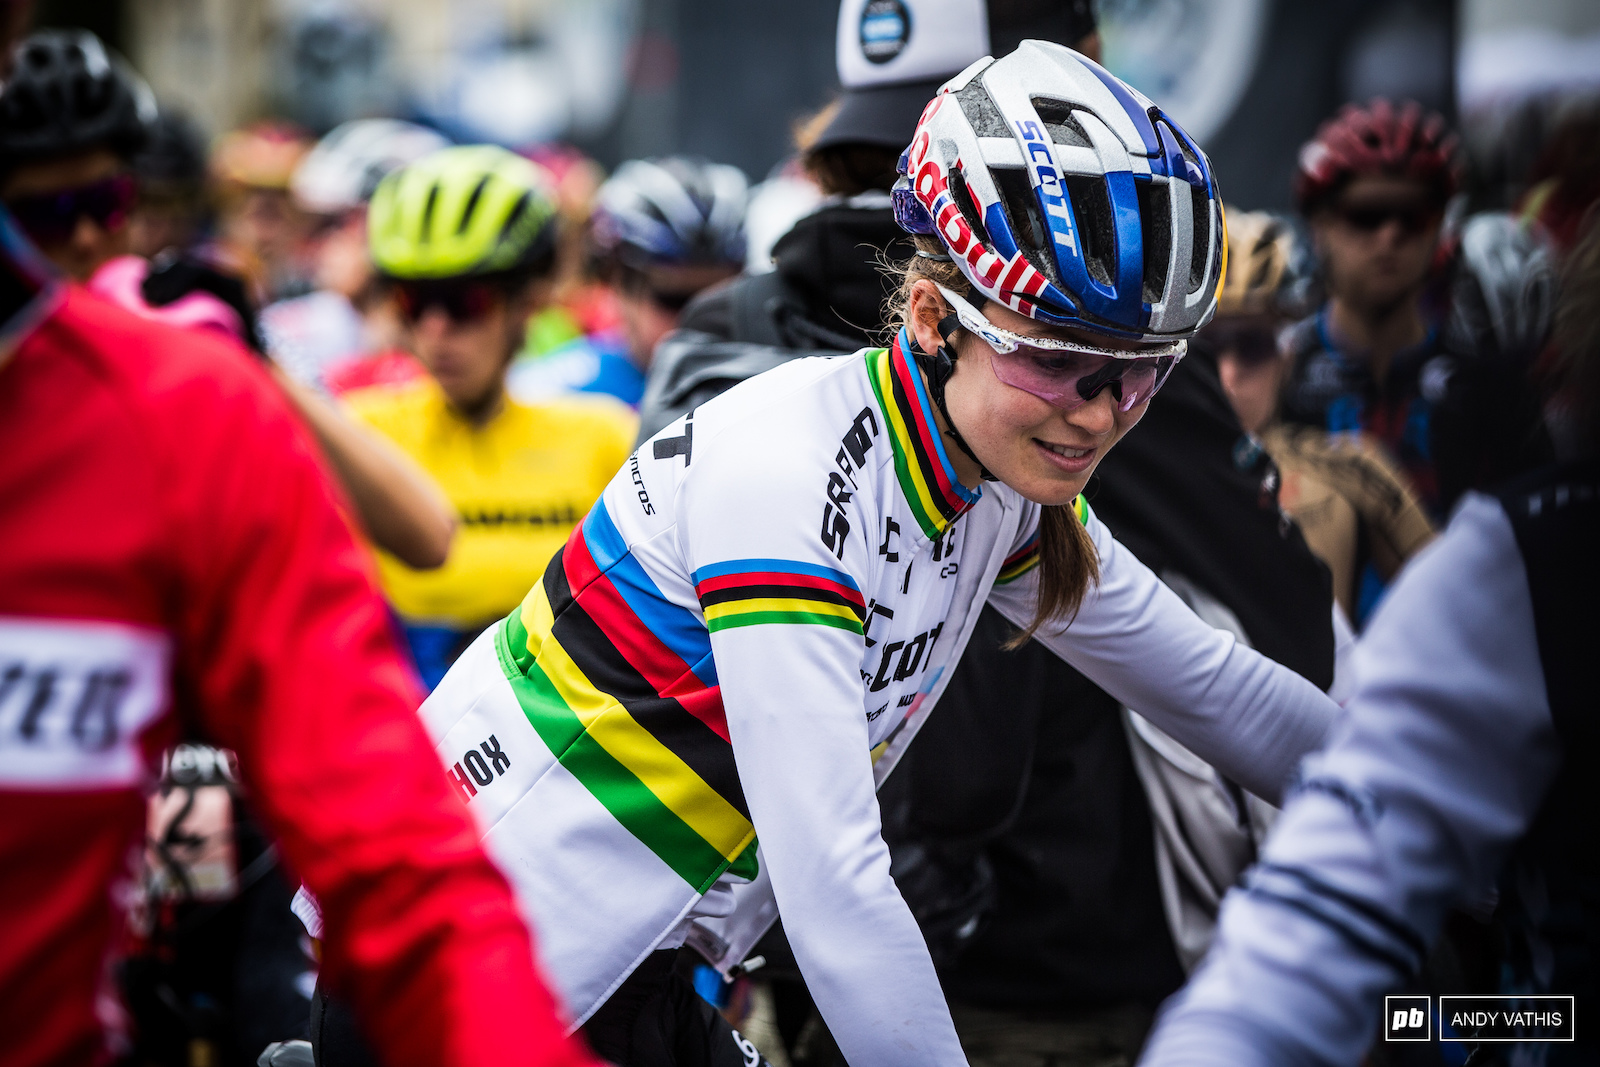 Kate Courtney started the weekend with a win in XCC showing us what she has in the power bank.